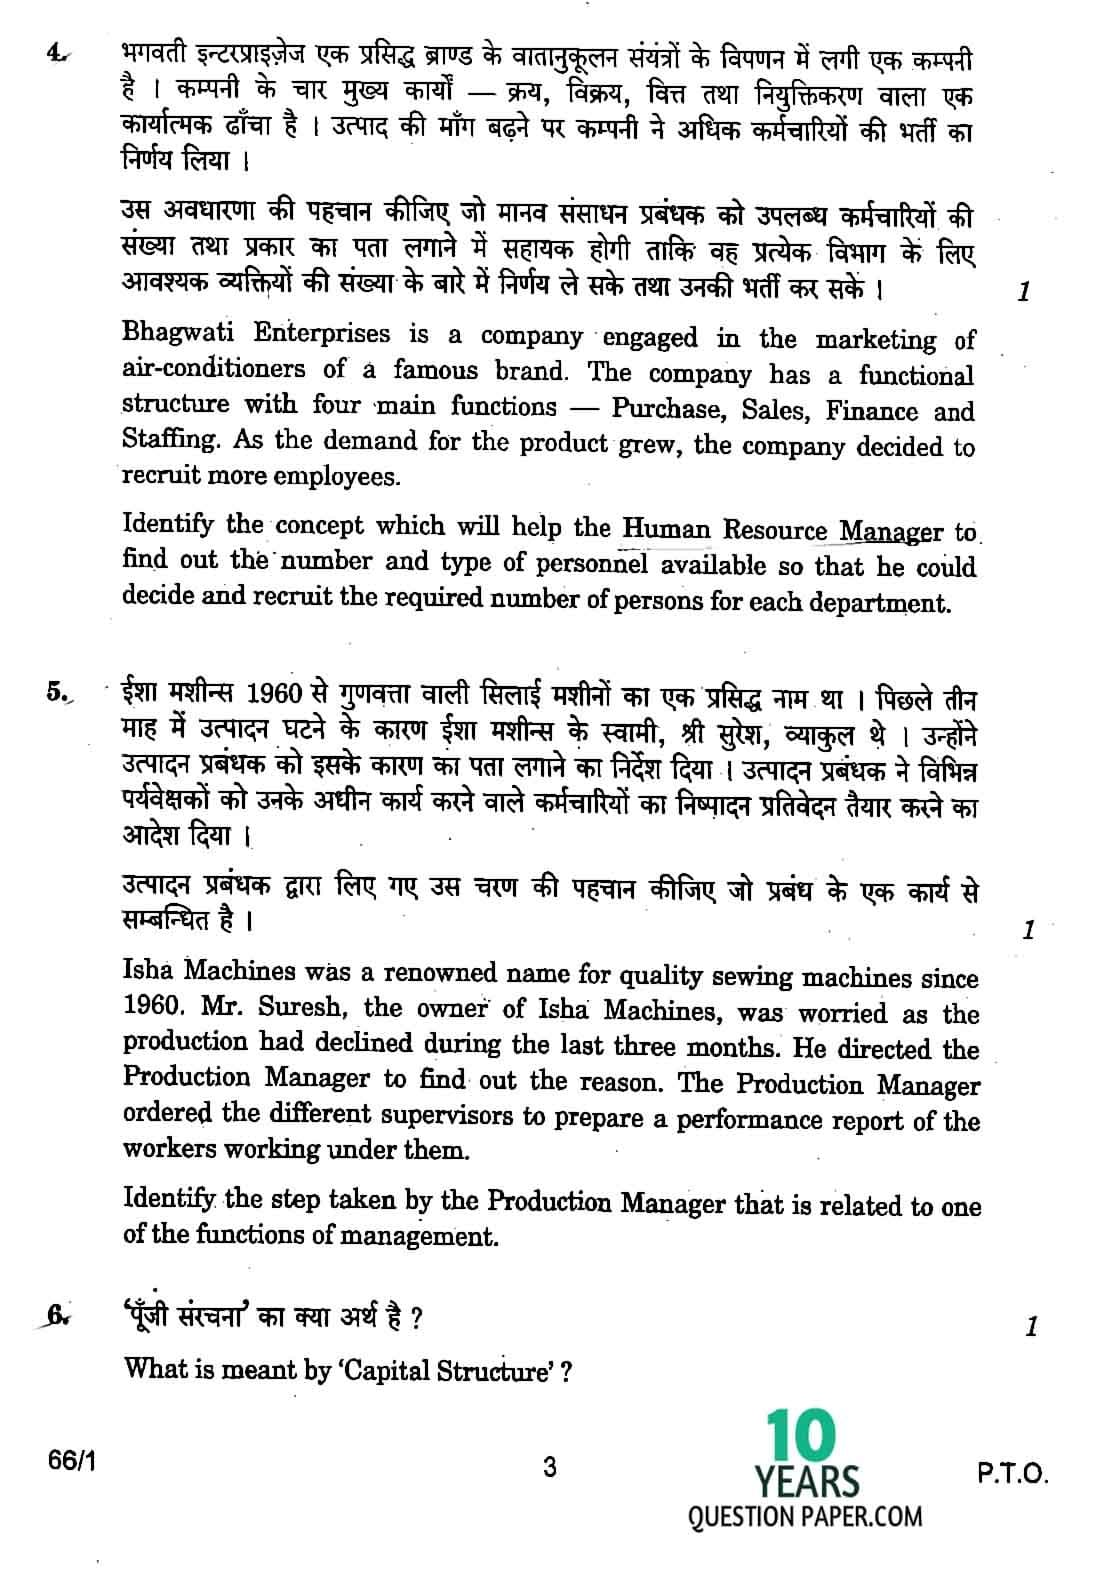 CBSE Class 12 Business Studies 2017 Question Paper